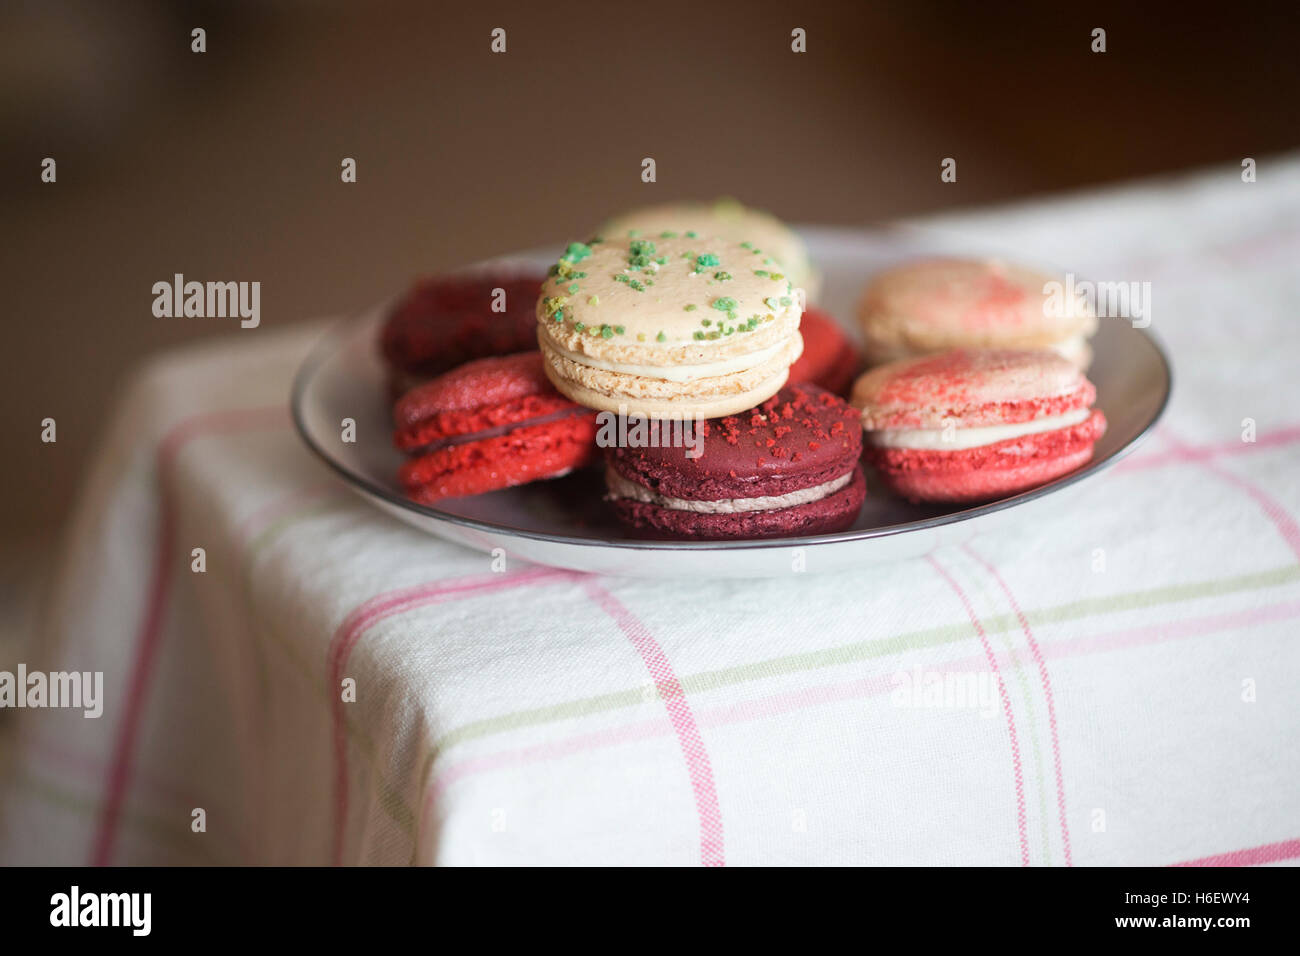 Christmas macarons - vanilla basil, frosted cranberry, mulled wine and candycane flavours on checked tablecloth - Stock Image